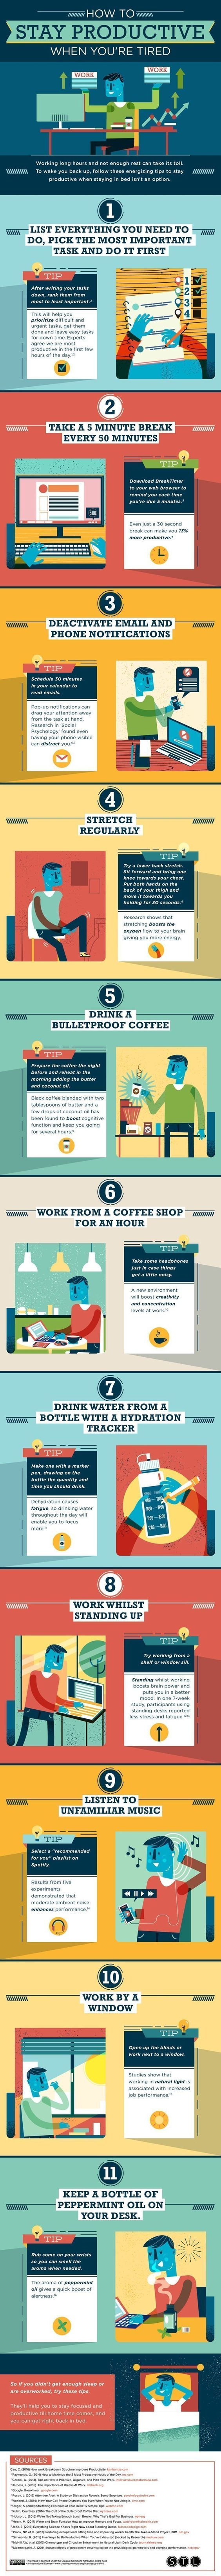 How to stay productive when you are tired